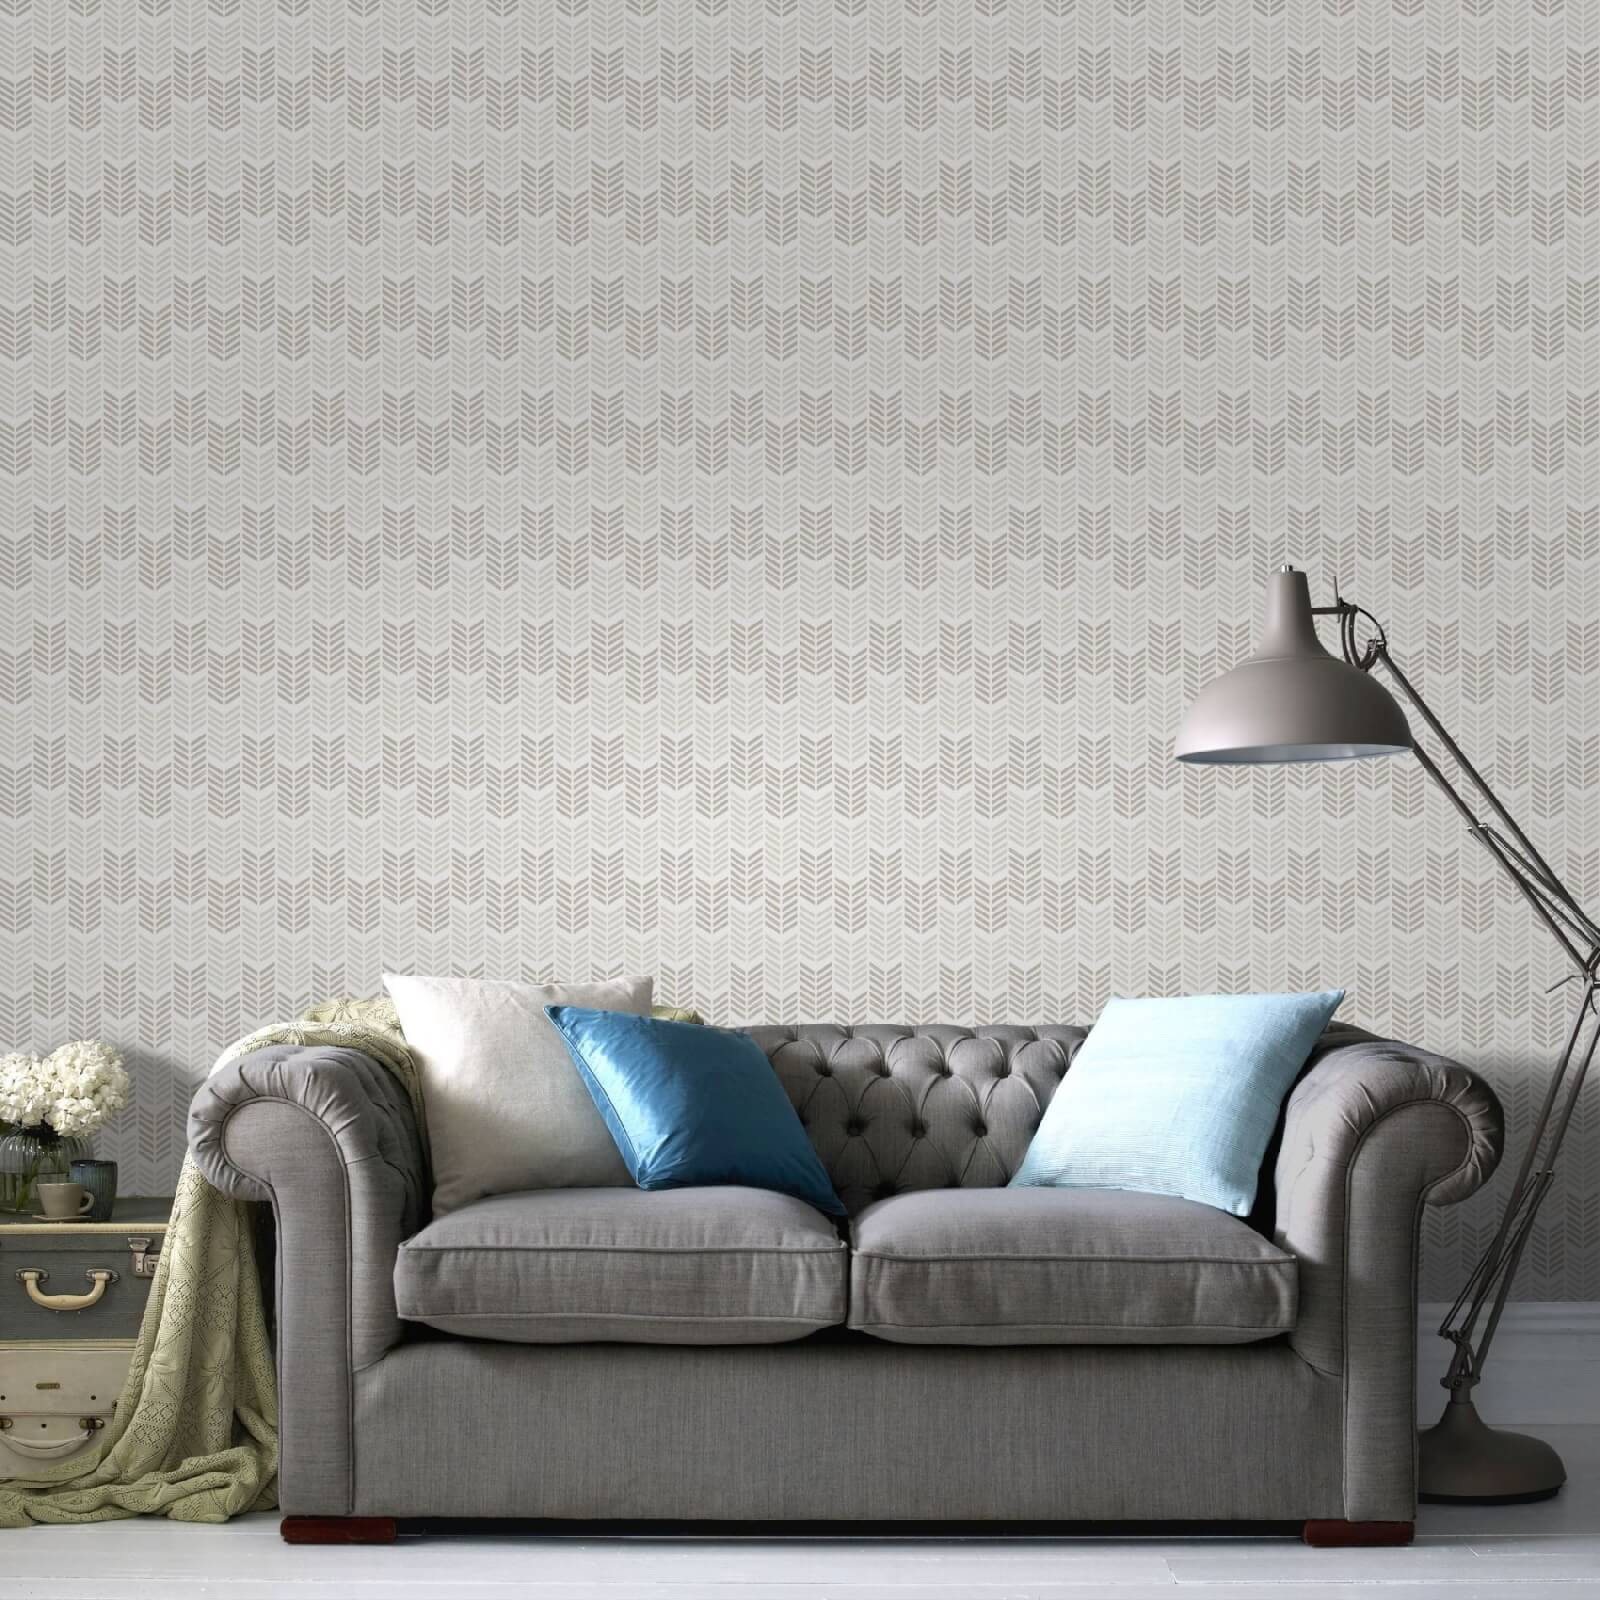 Superfresco Easy Oiti Chevron Geometric Wallpaper - Taupe